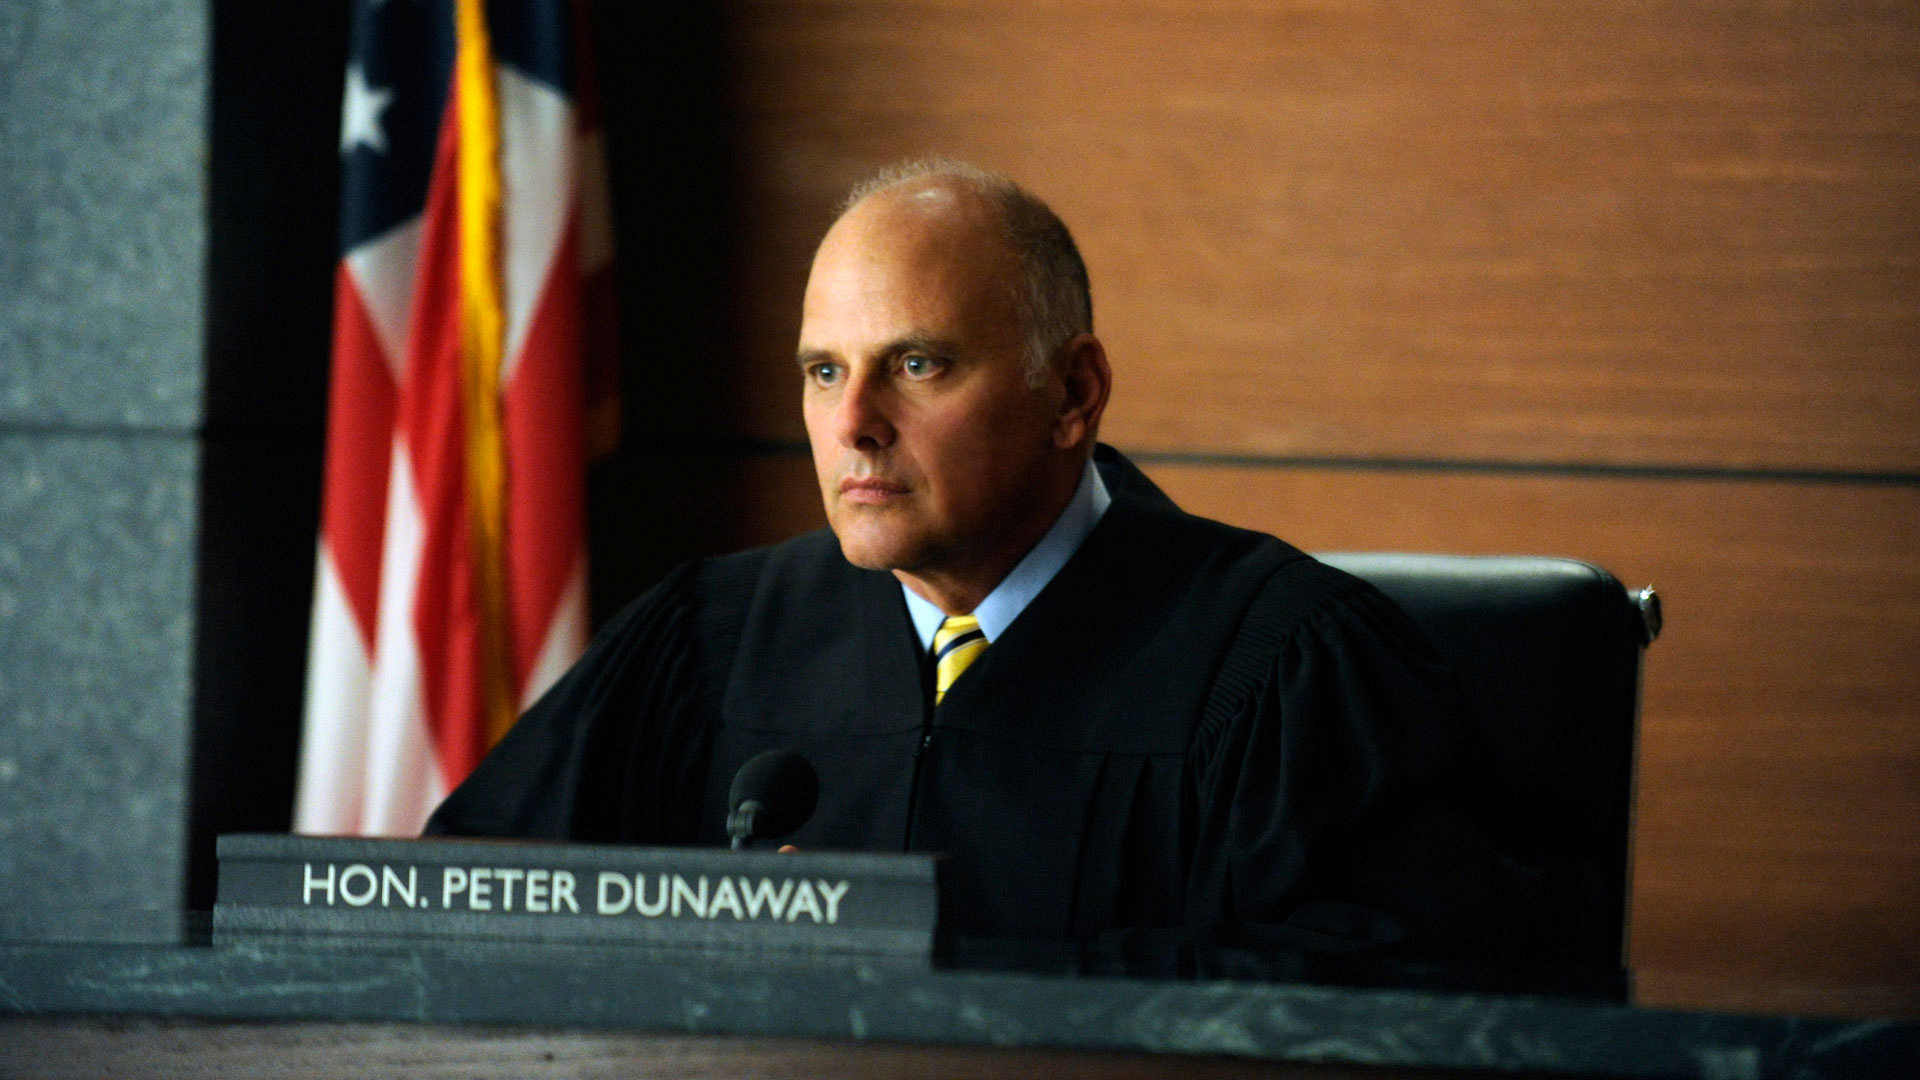 Judge Peter Dunaway (Kurt Fuller)